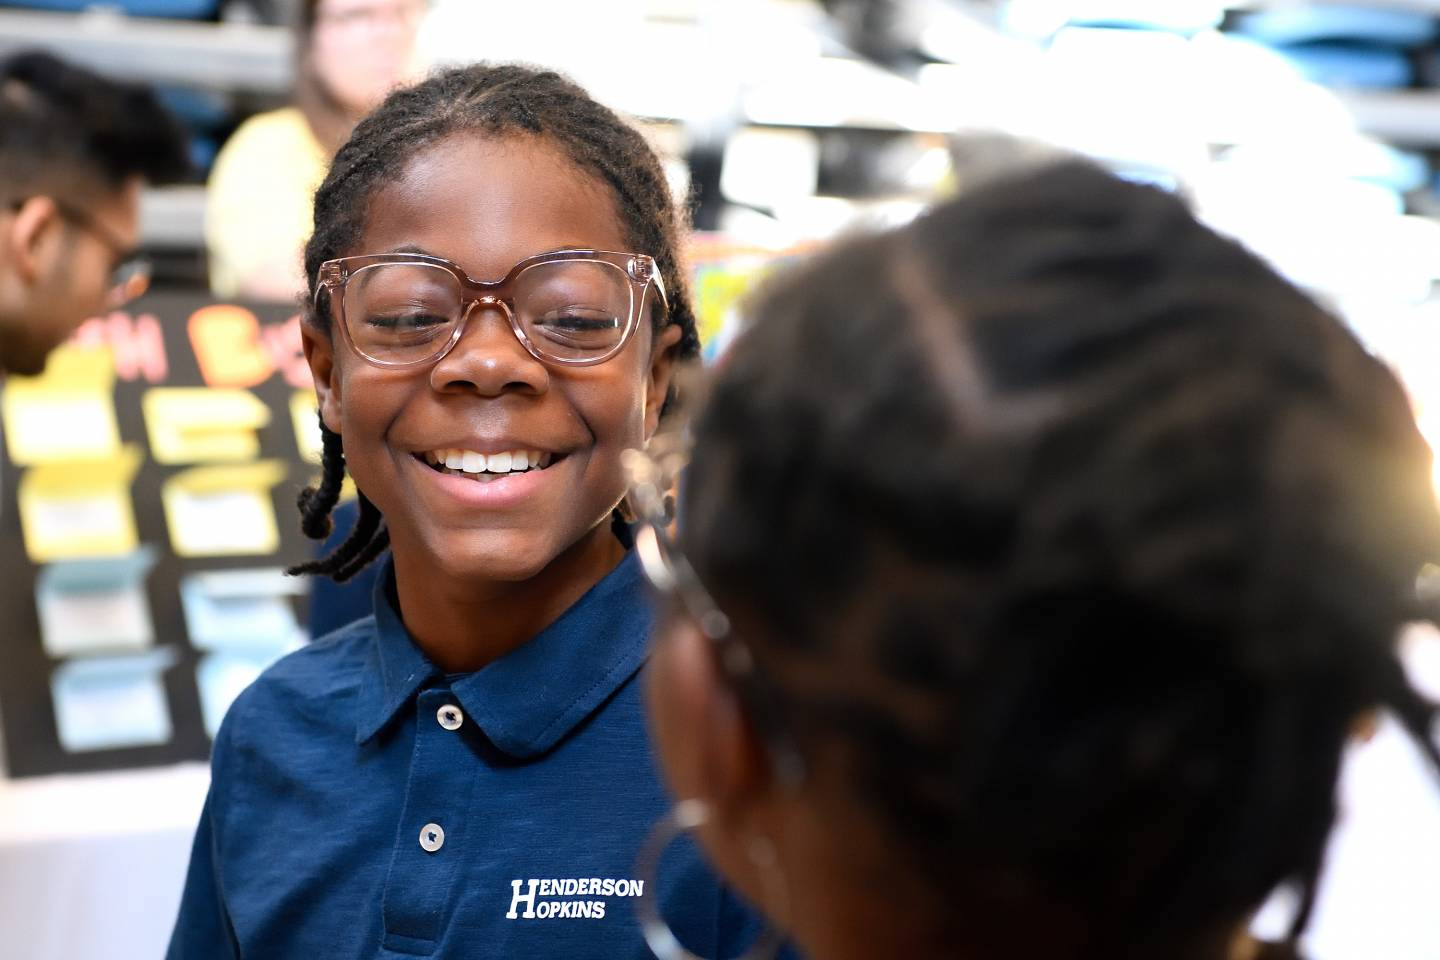 An elementary school student smiles while trying on eyeglasses